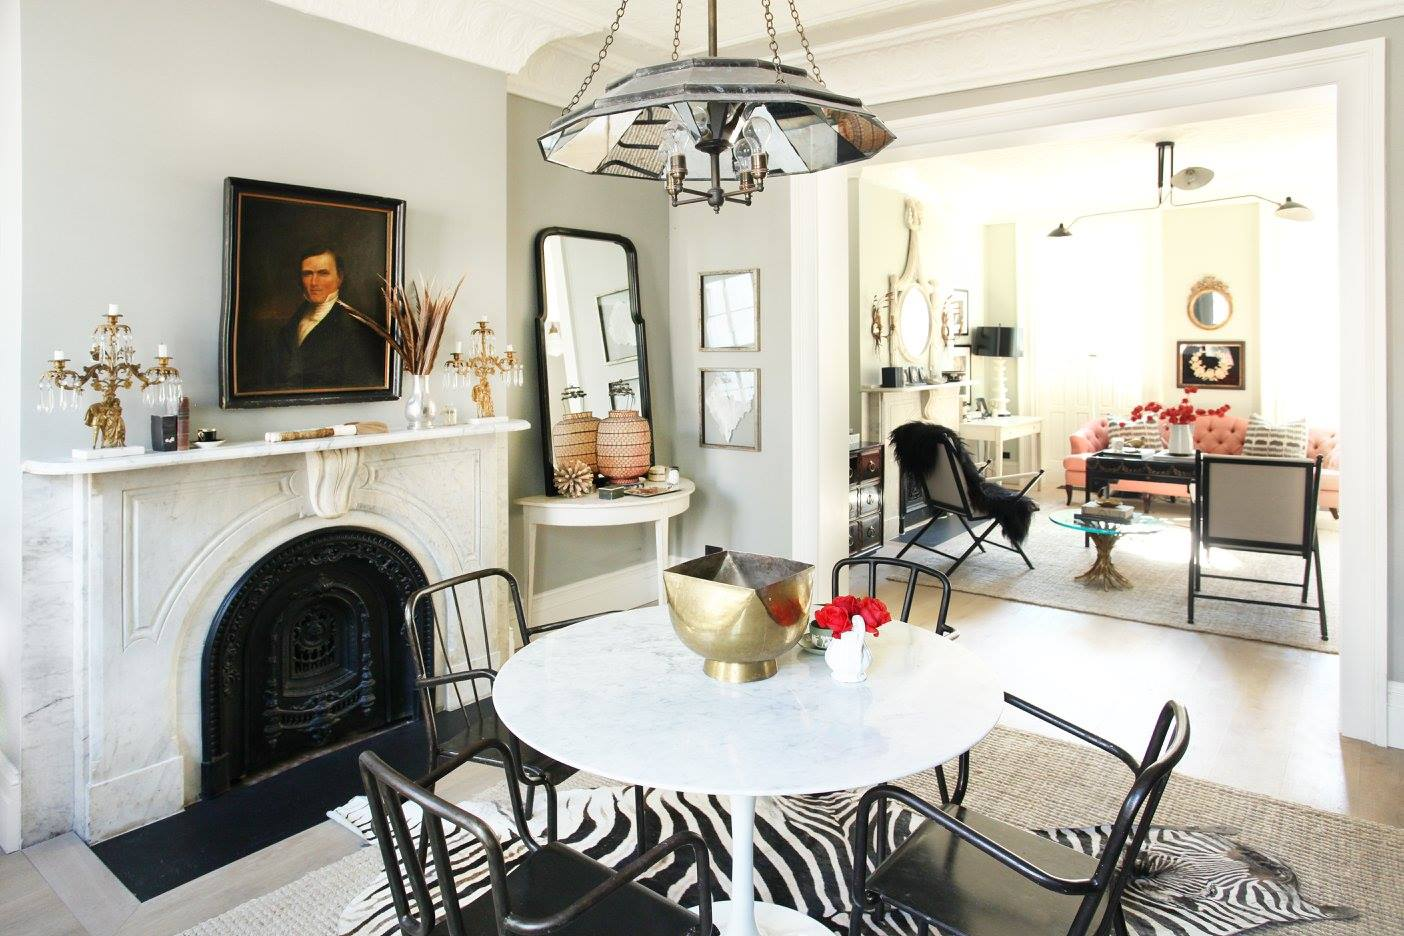 Trying to capture this eclectic feel in your own apartment or home? Go antique shopping! Mixing in antique paintings, accessories and furniture makes a space so much more interesting than using all squeaky clean West Elm or Ikea.